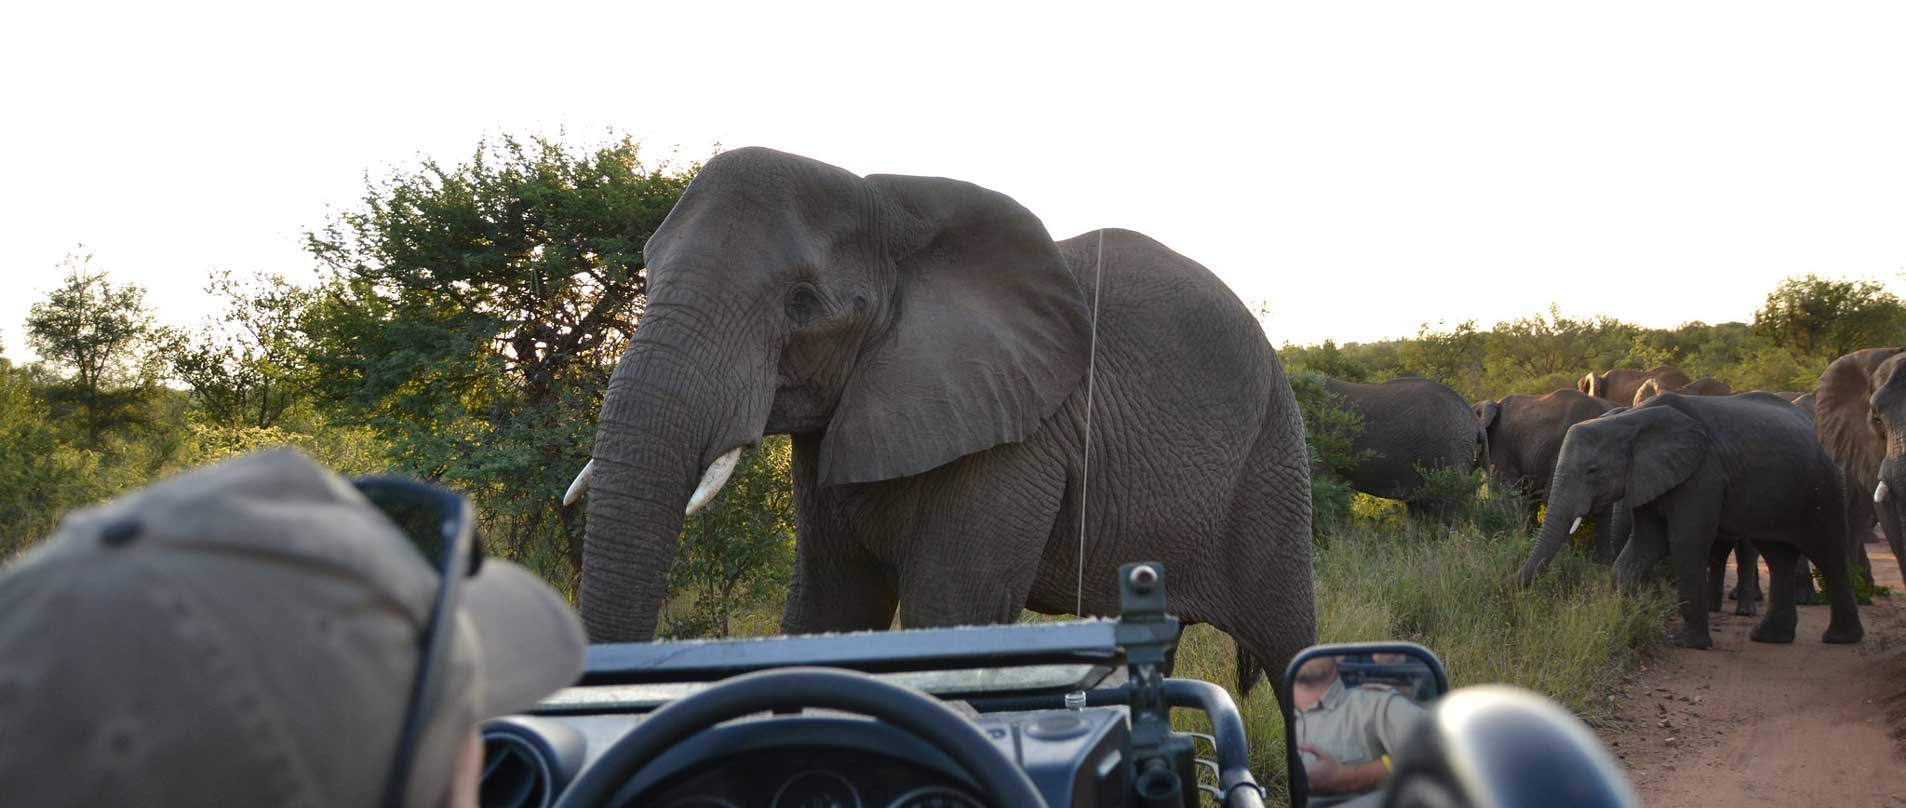 Camera-Trapping-and-data-collection-in-South-Africa-cover